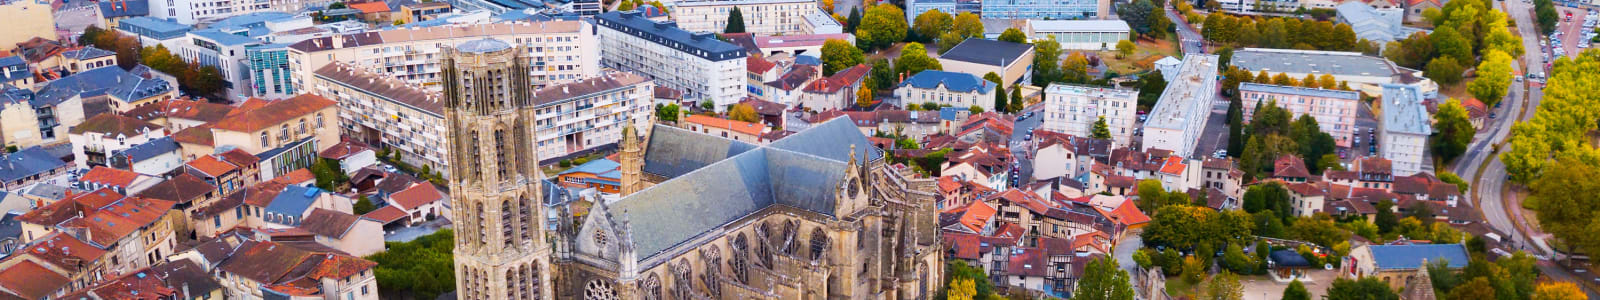 Aerial view of Limoges